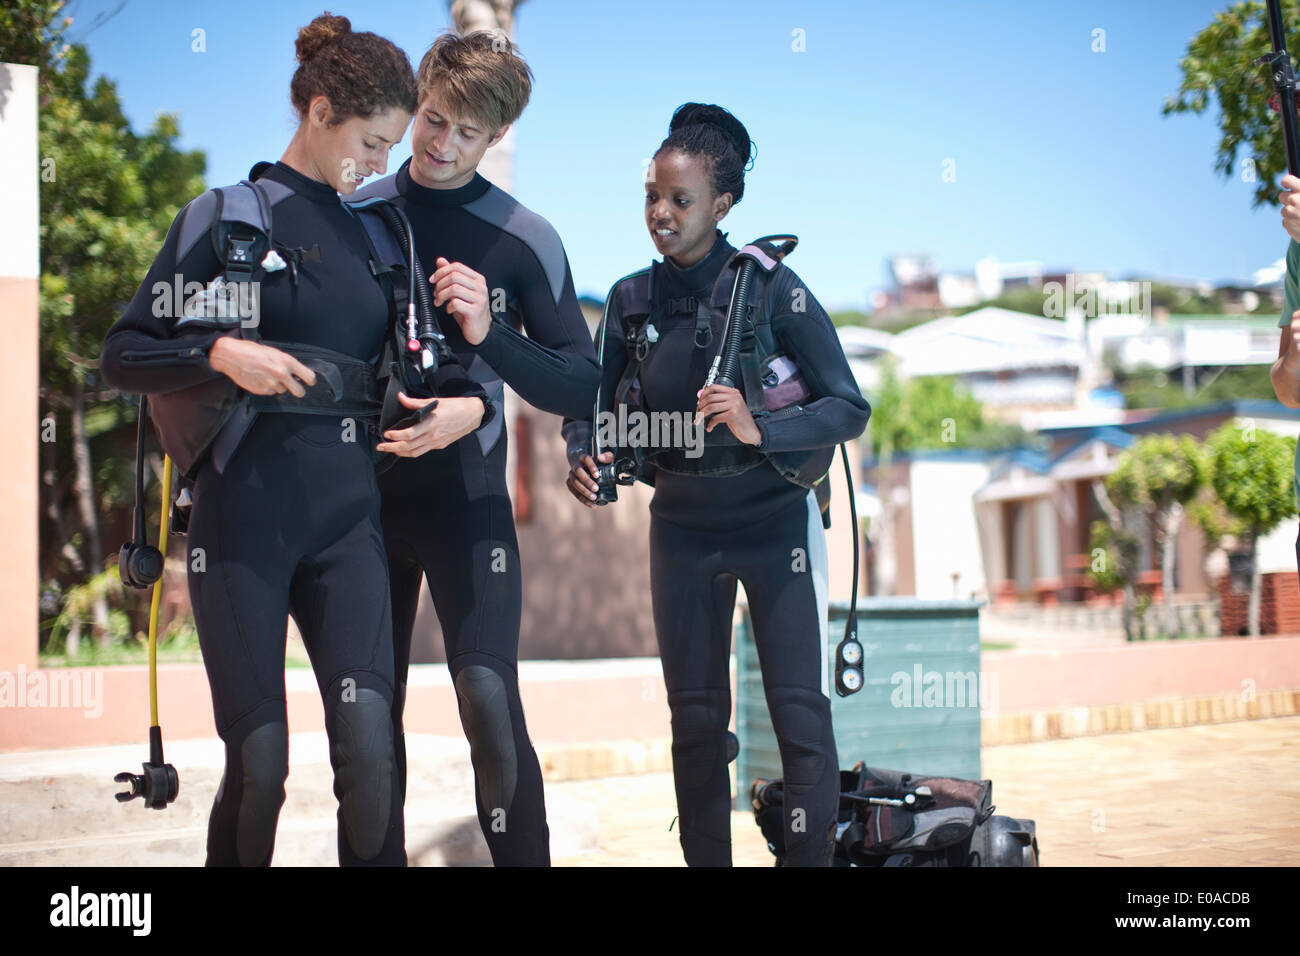 Scuba diving instructor strapping equipment onto pupil - Stock Image